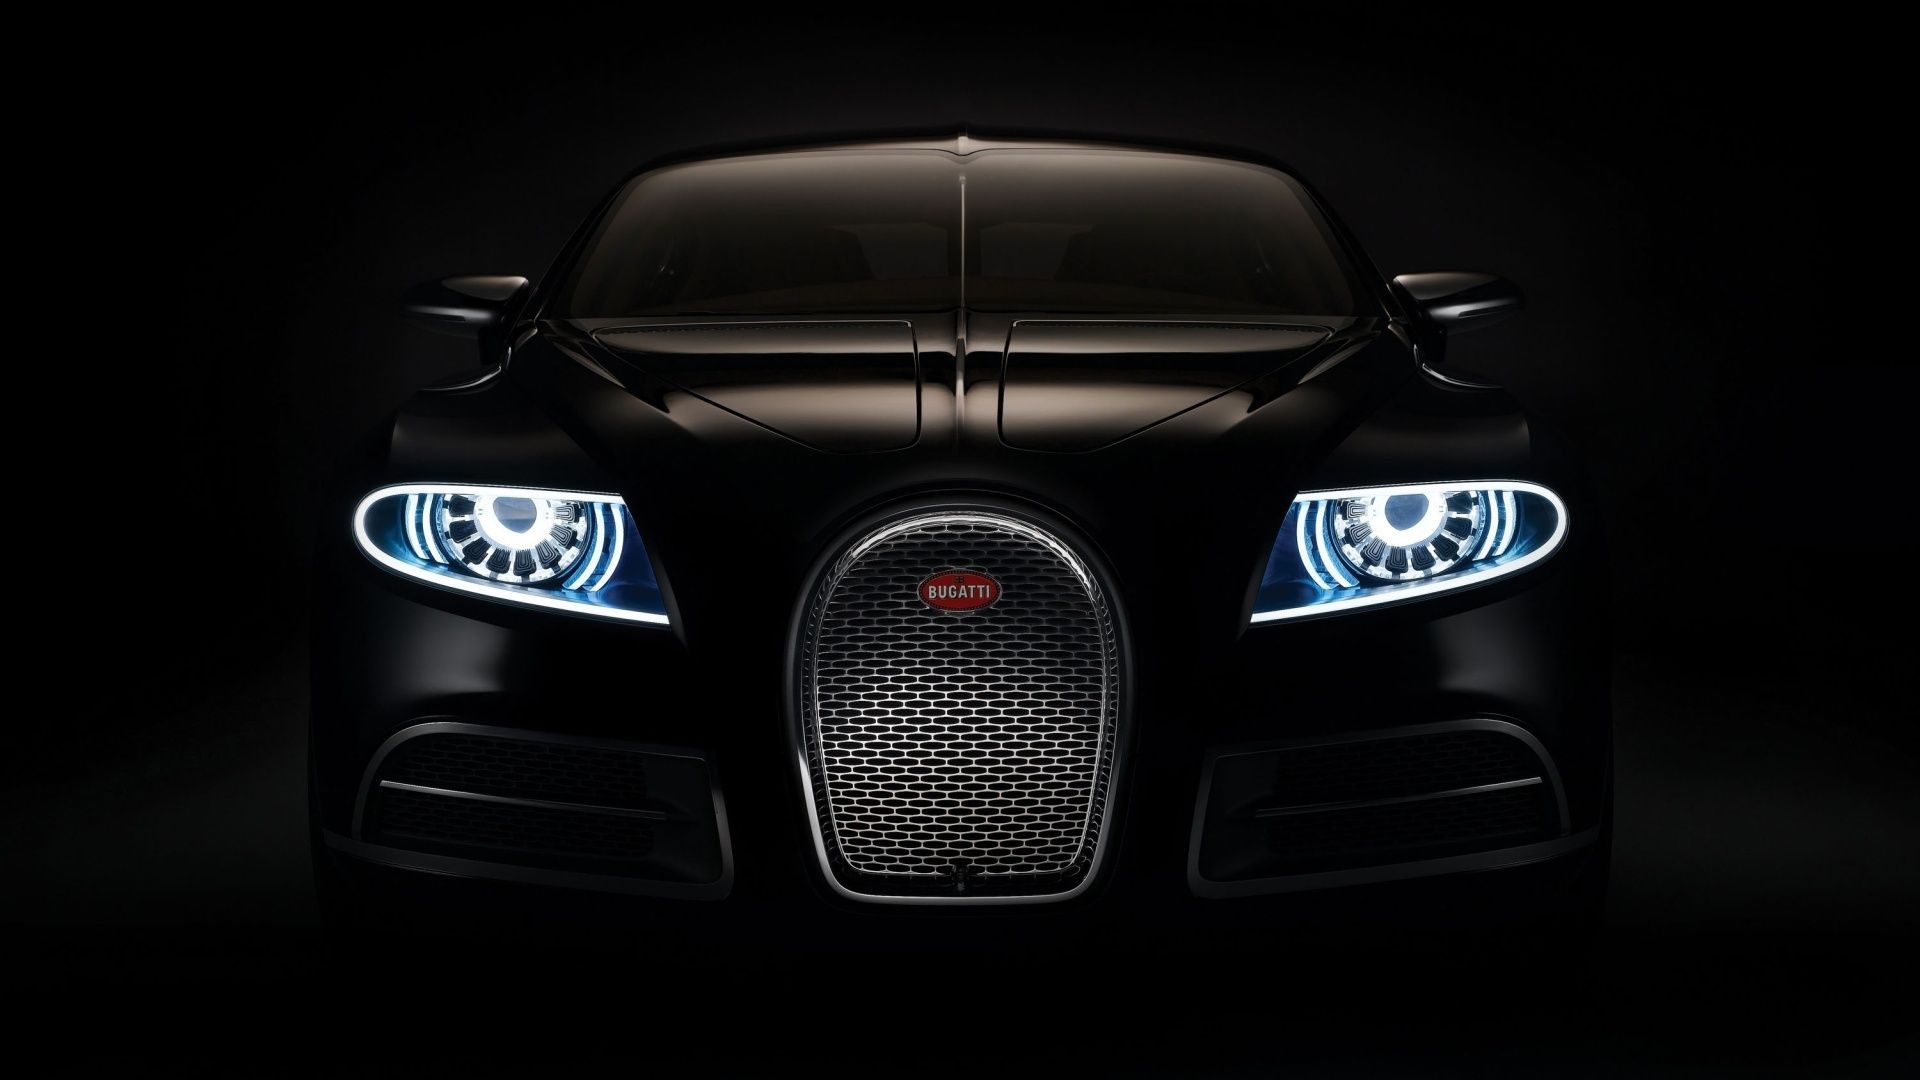 Images Of The Bugatti Galibier Concept Car